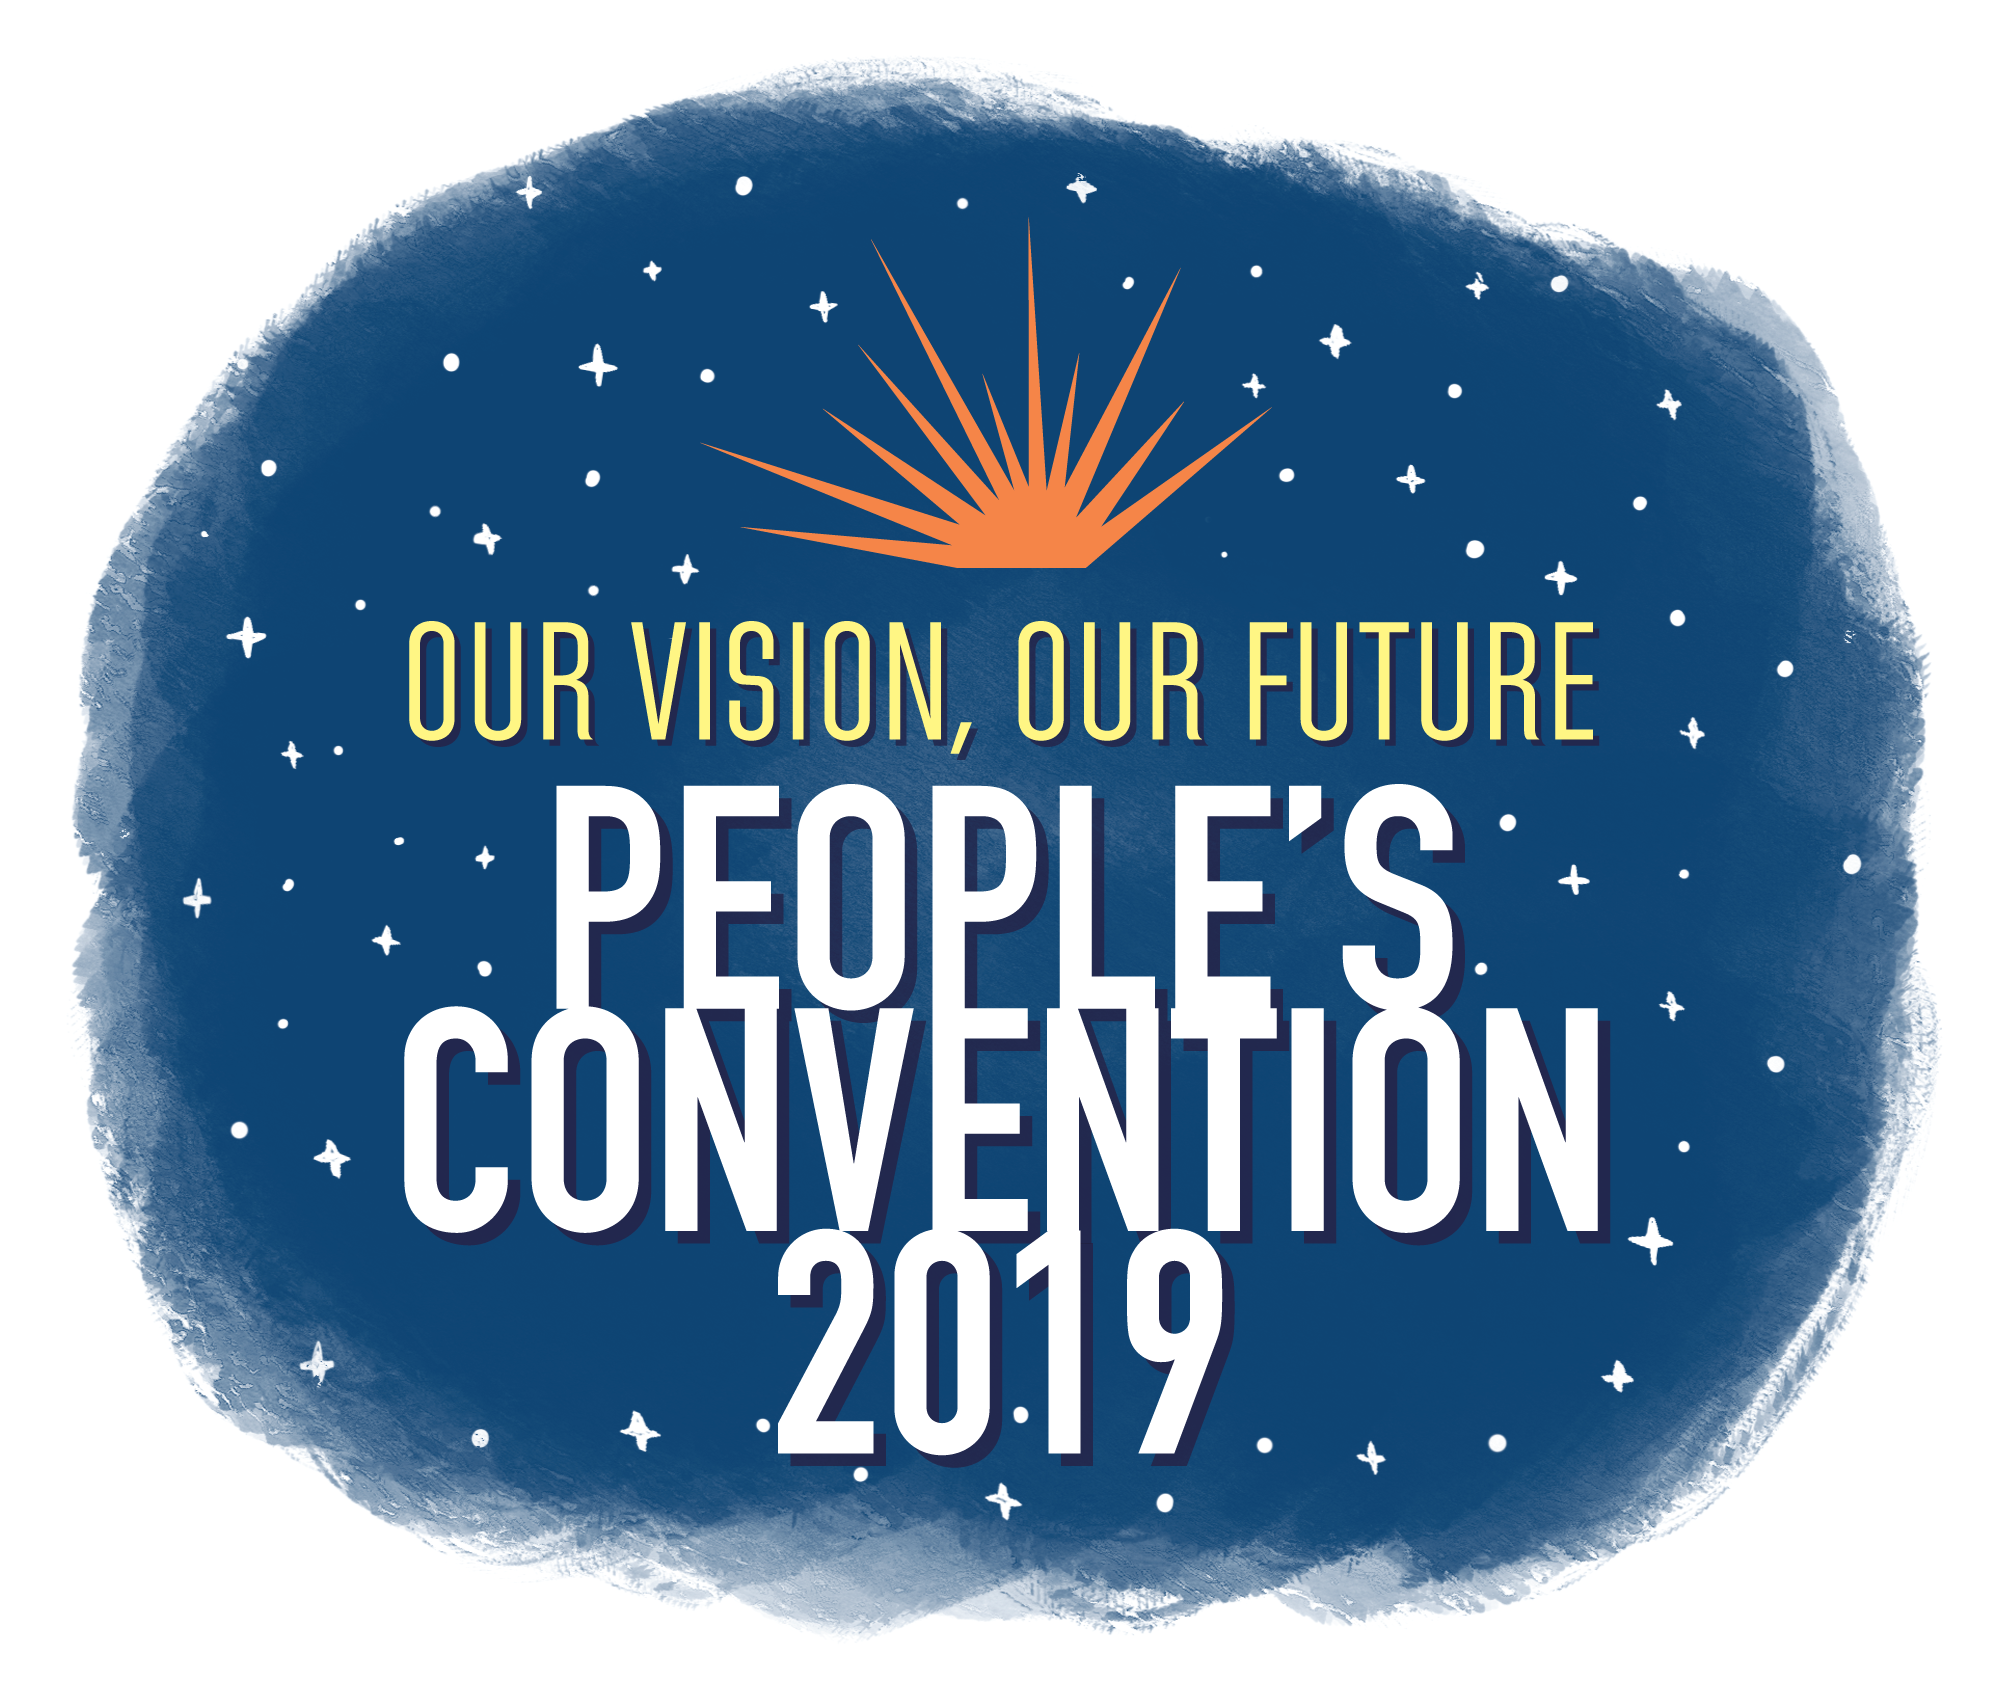 Our Vision, Our Future: People's Convention | The Center for